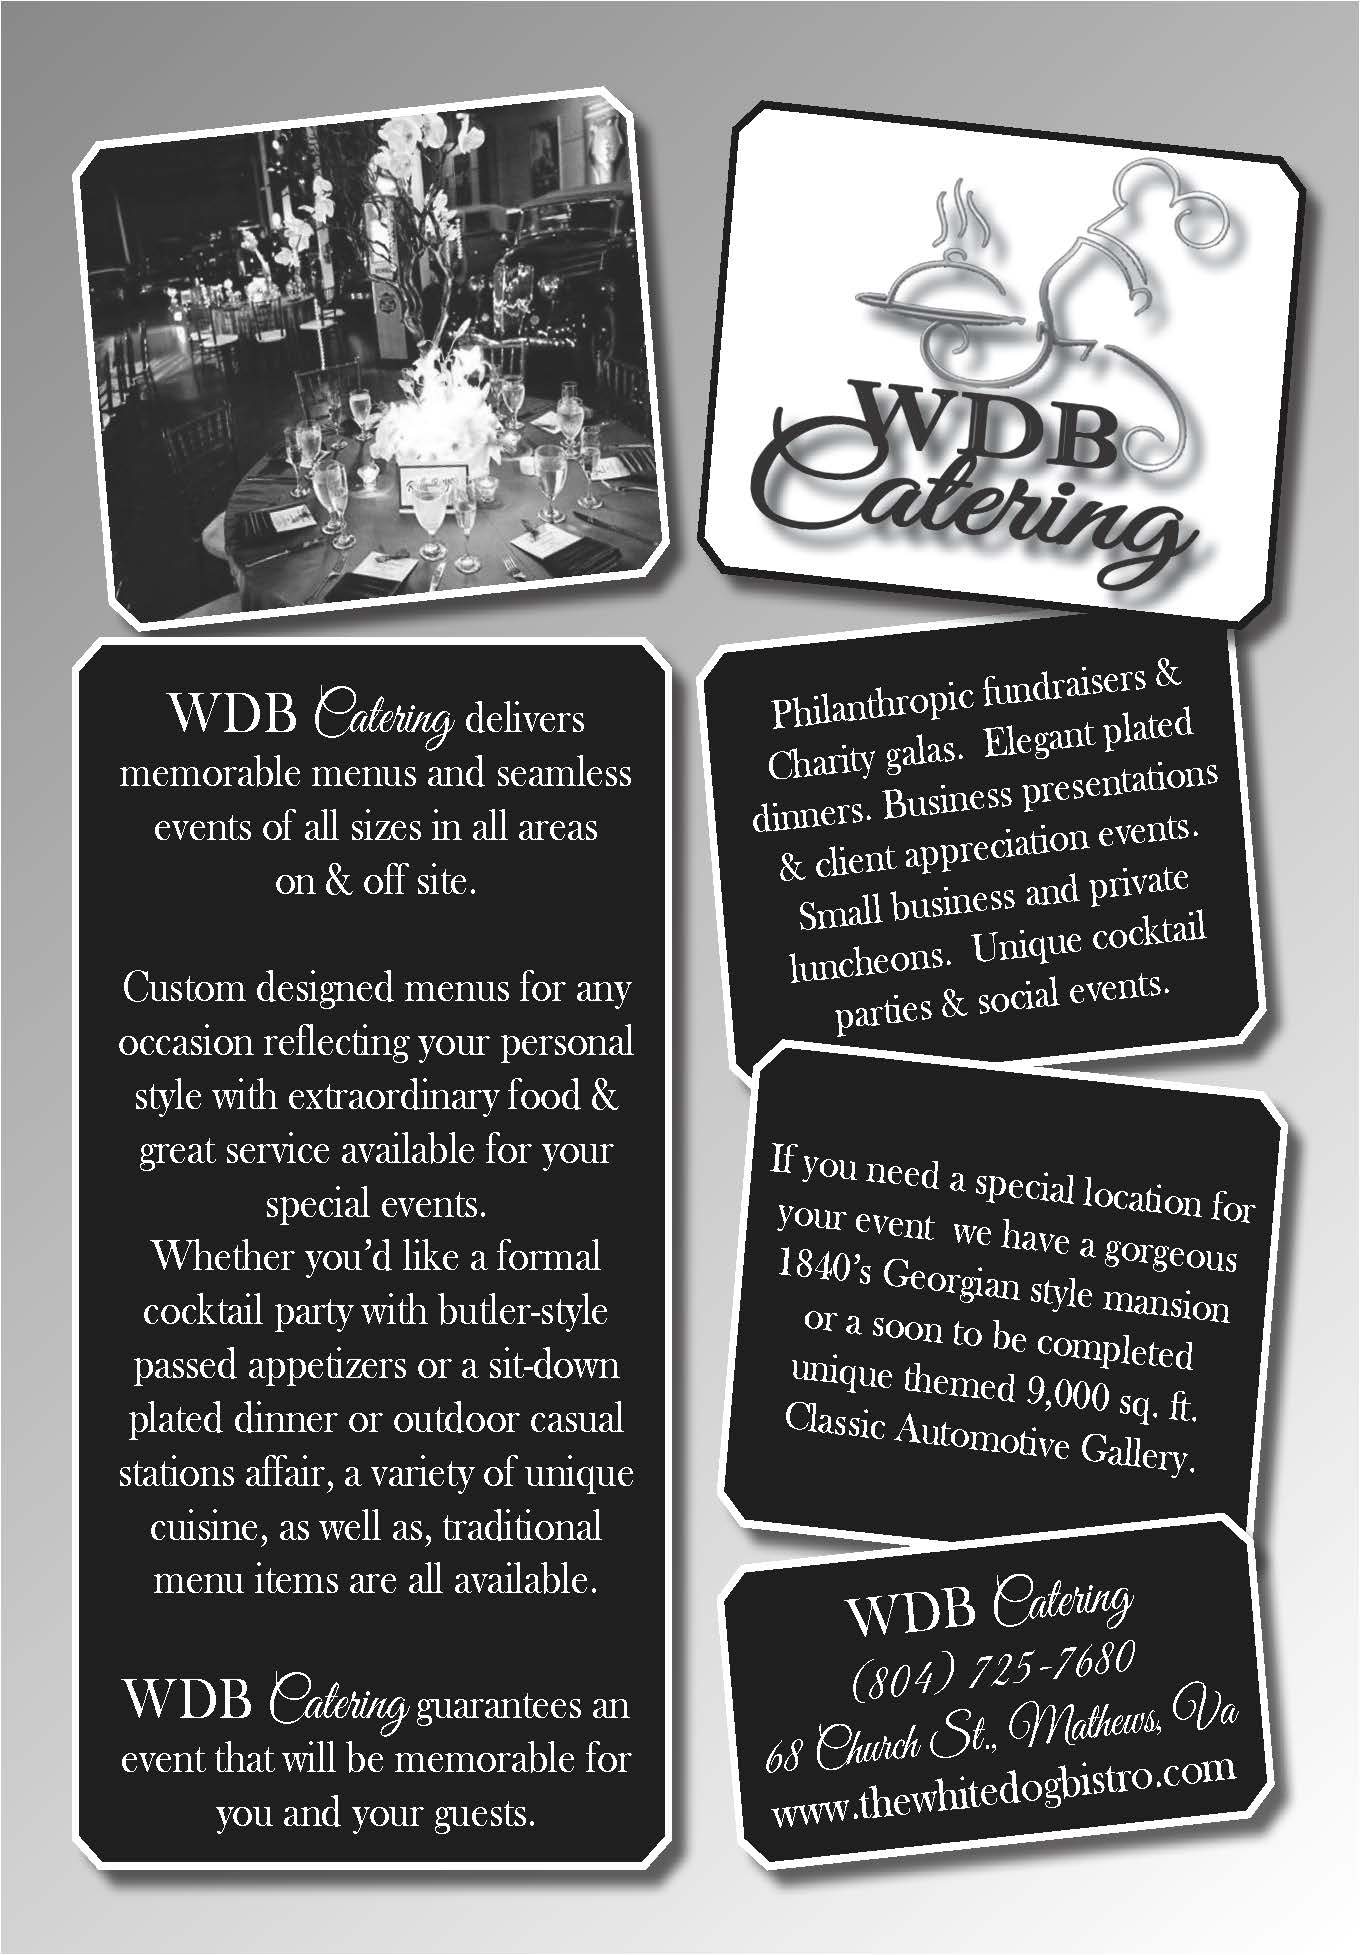 White Dog Bistro Catering Ad